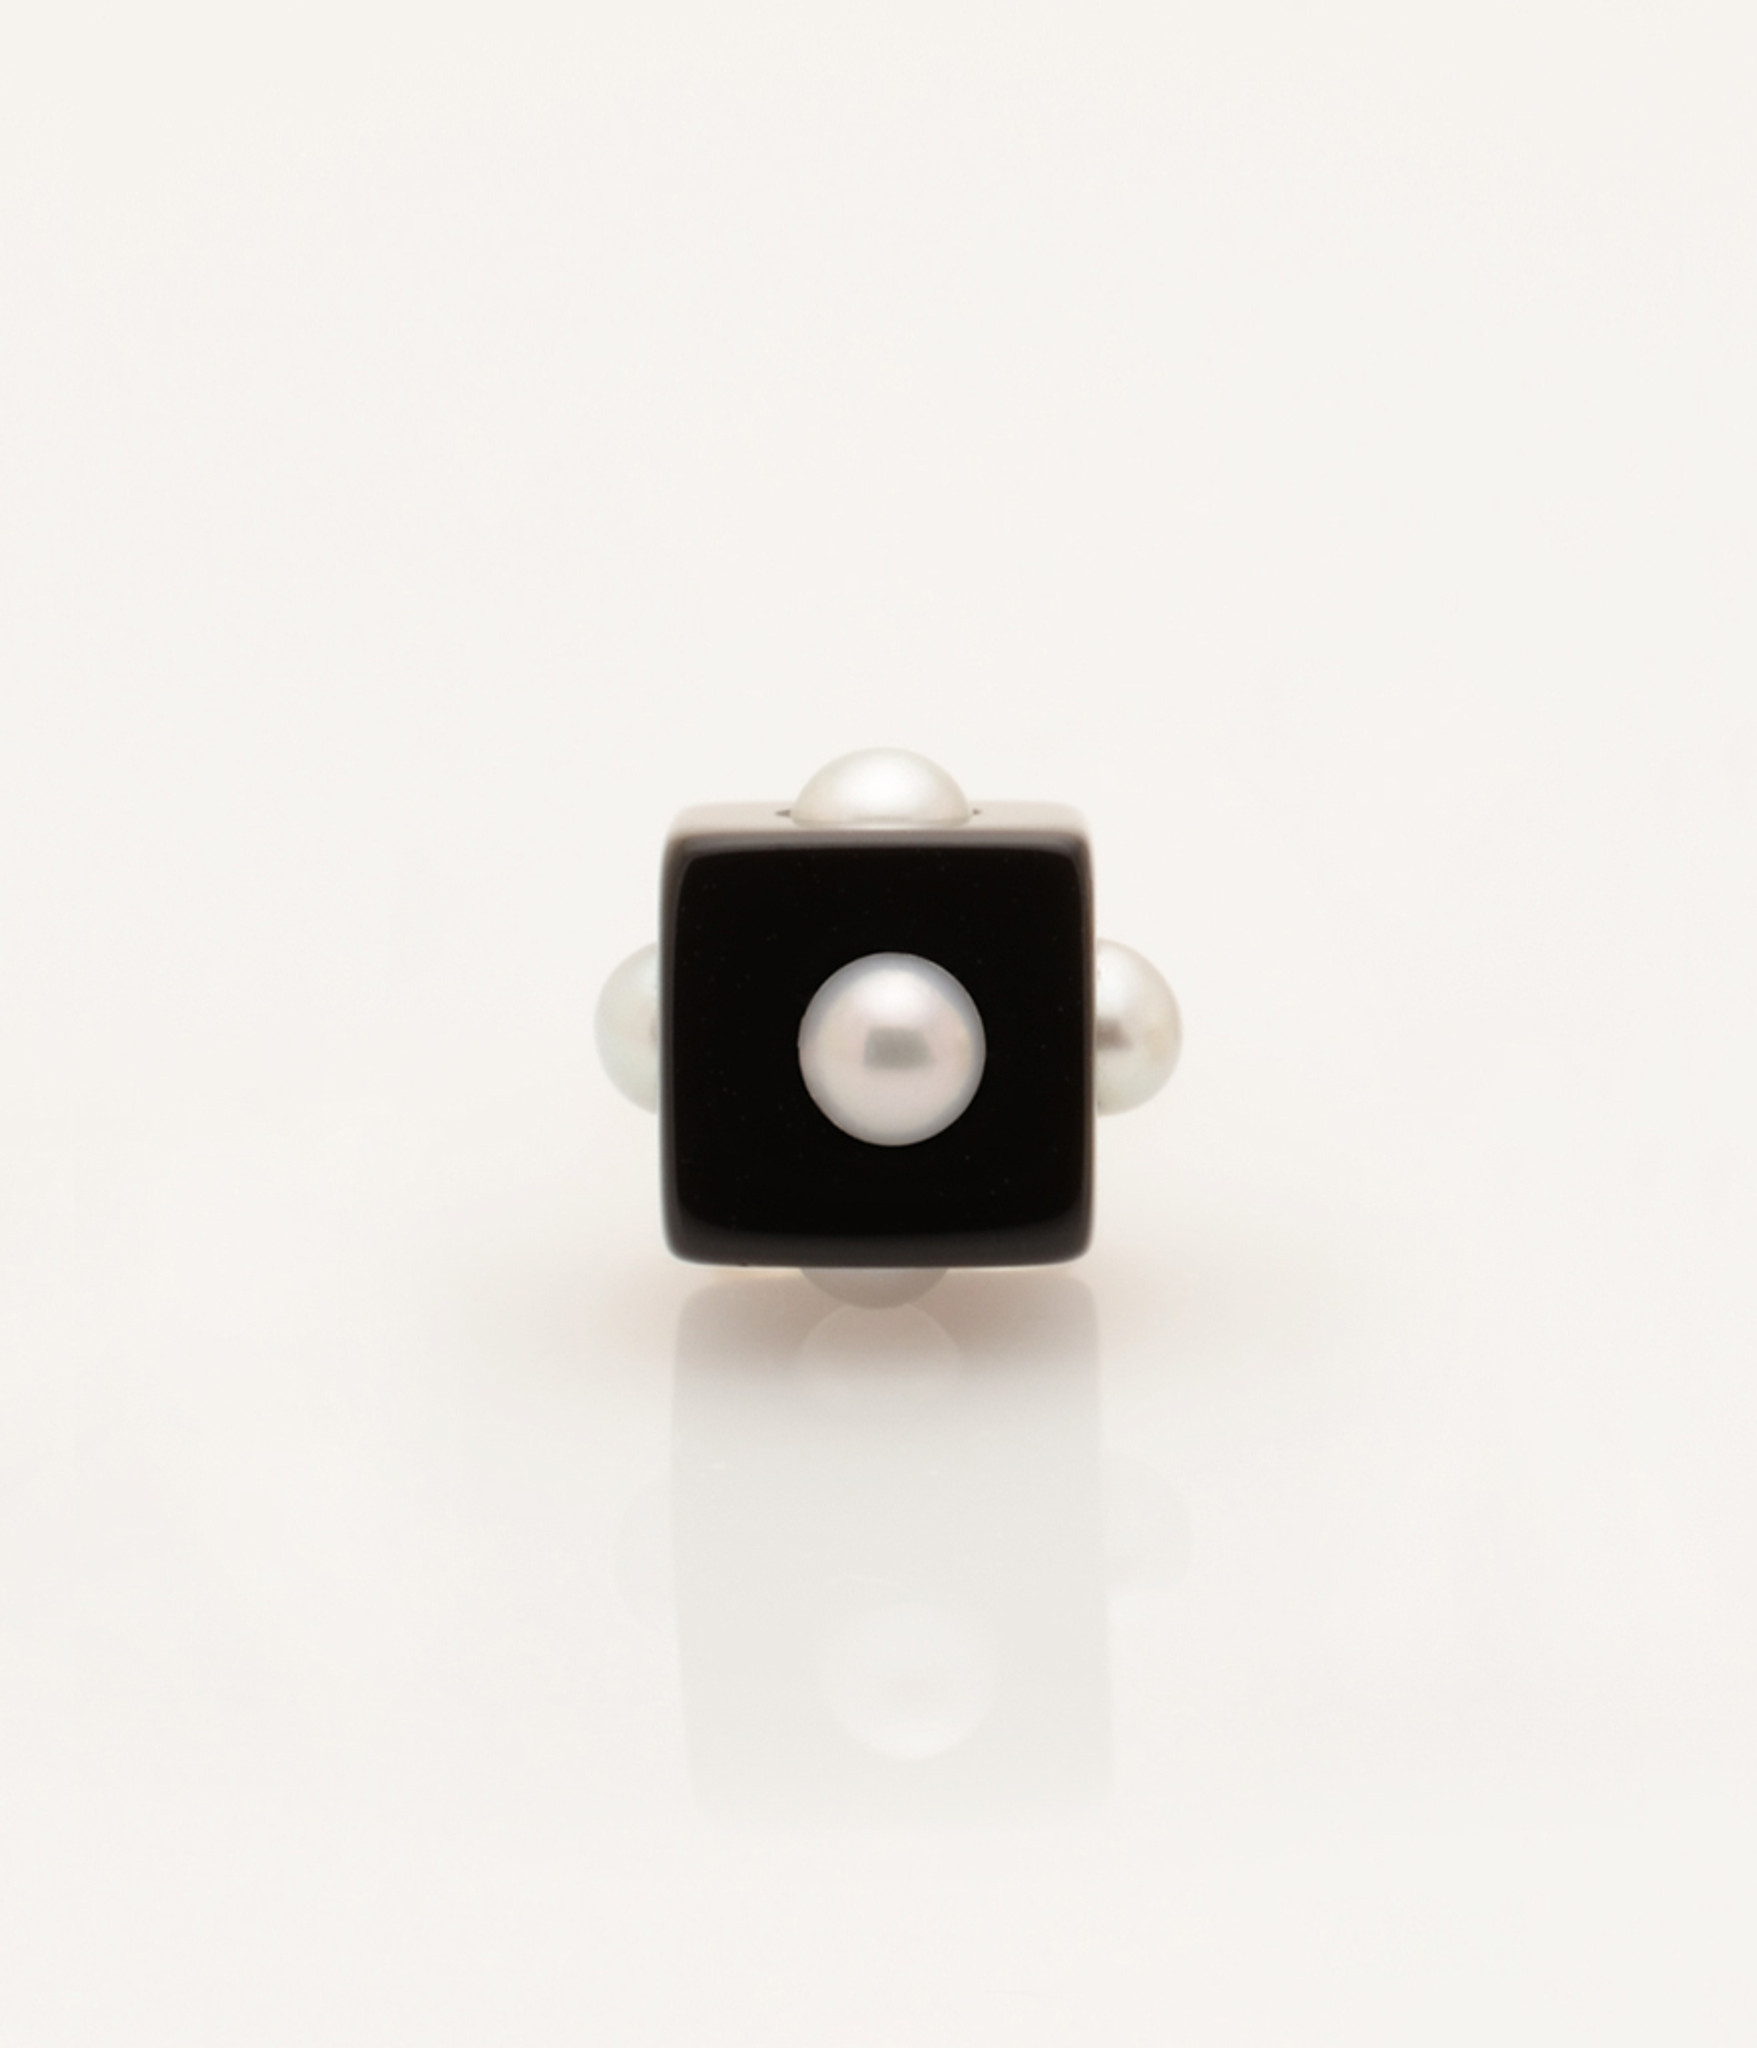 Single Freshwater Cultured Mini Pearl Onyx Cube with 14k Gold Post by Nektar De Stagni